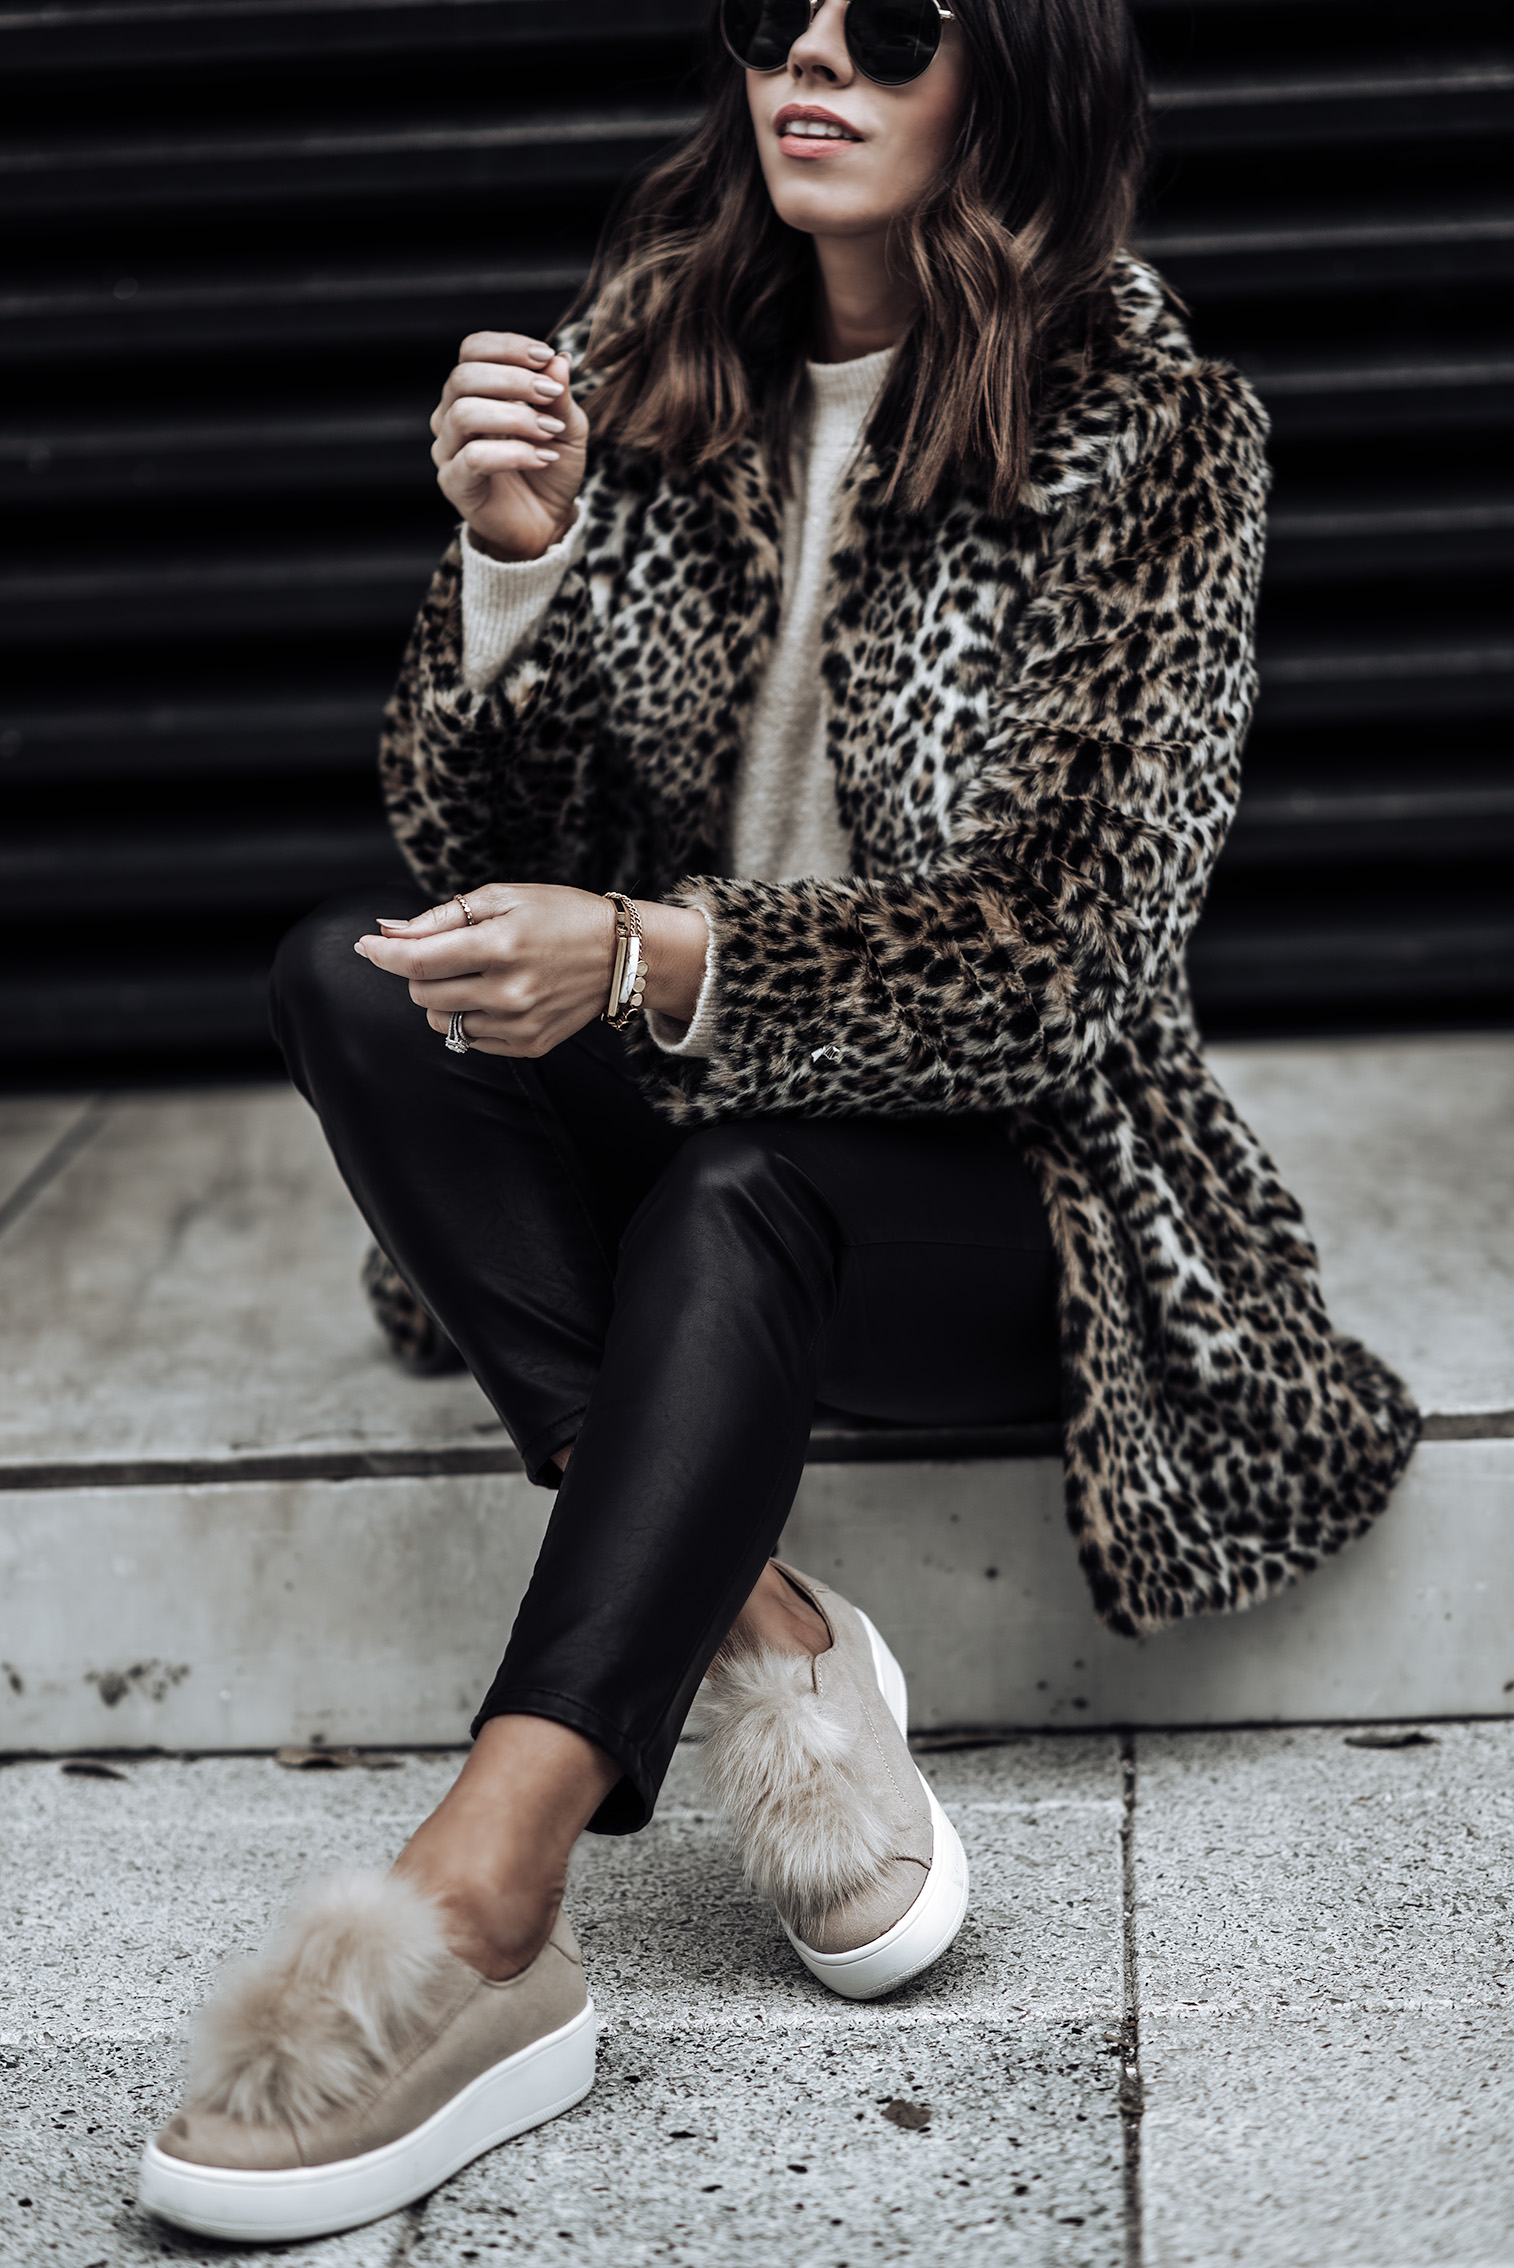 Fluffy Yarn Sweater | Leopard print Coat | Pom pom sneakers | Sunglasses |Tiffany Jais fashion and lifestyle blogger of Flaunt and Center | Houston fashion blogger | Leopard coat trend | Streetstyle blog